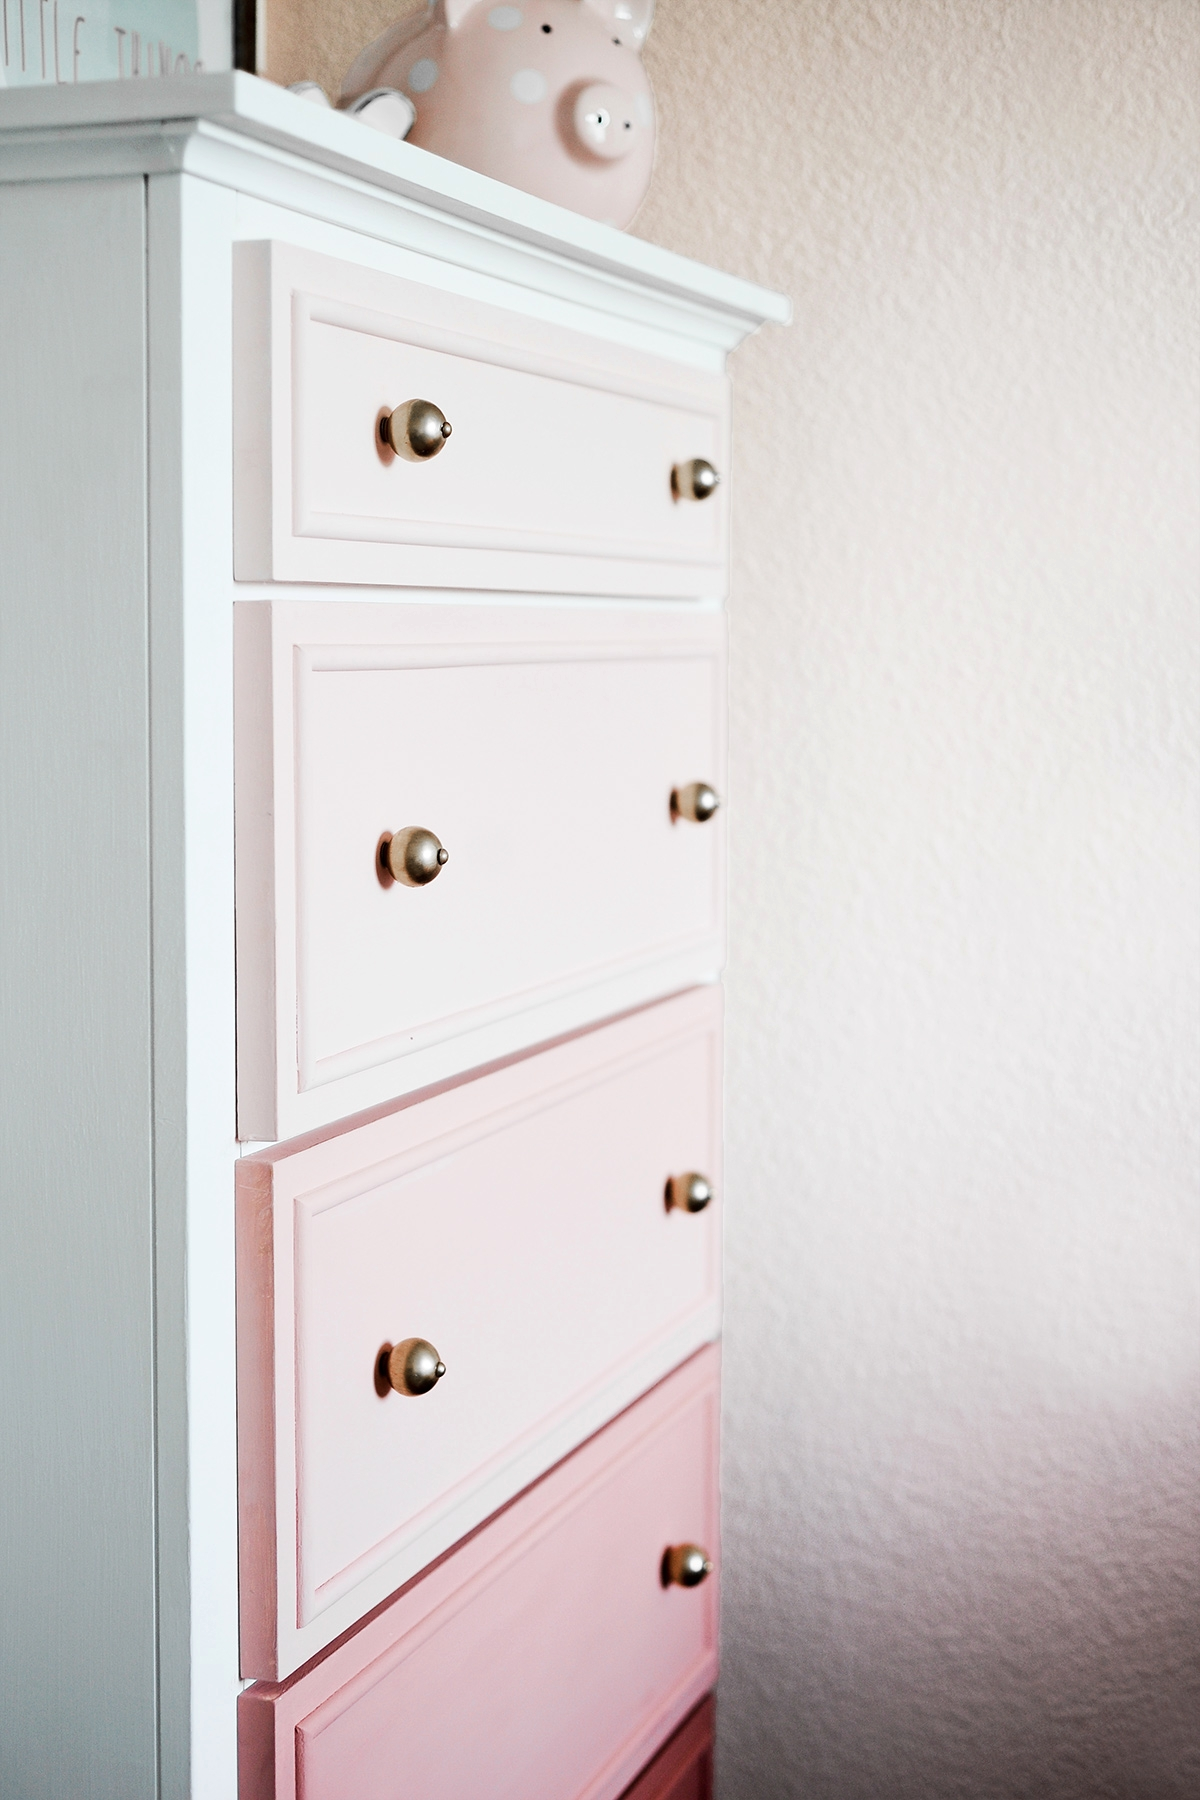 DRESSER - Dresser or Changing Table + Paint Brush + White Milk Paint + Primary Color Milk Paint